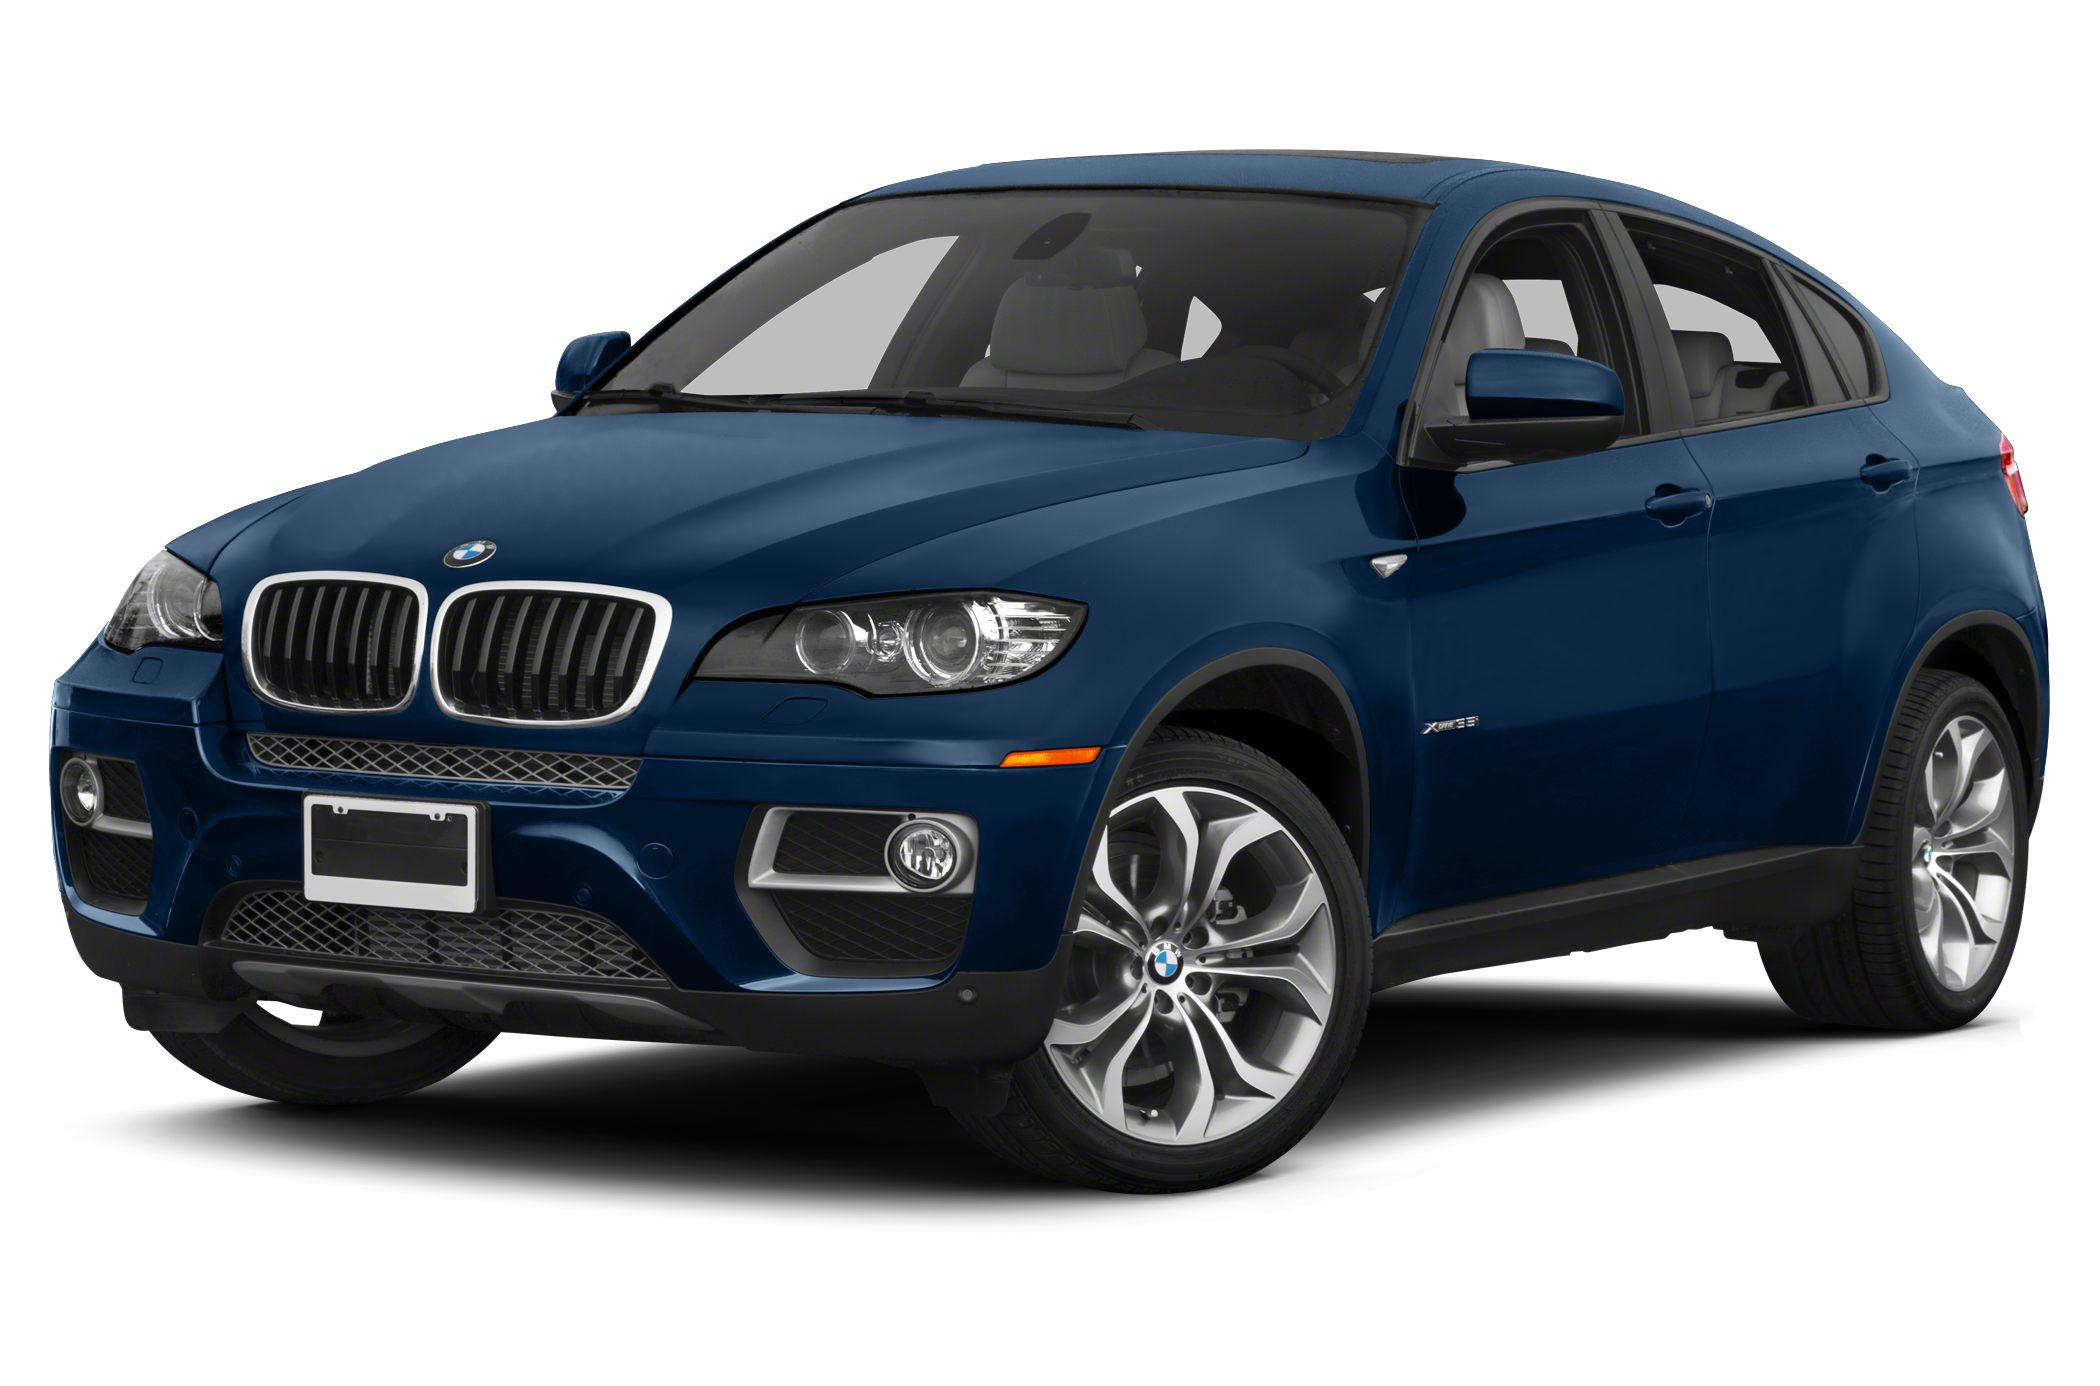 2014 BMW X6 XDrive35i SUV for sale in Chandler for $58,818 with 24,460 miles.